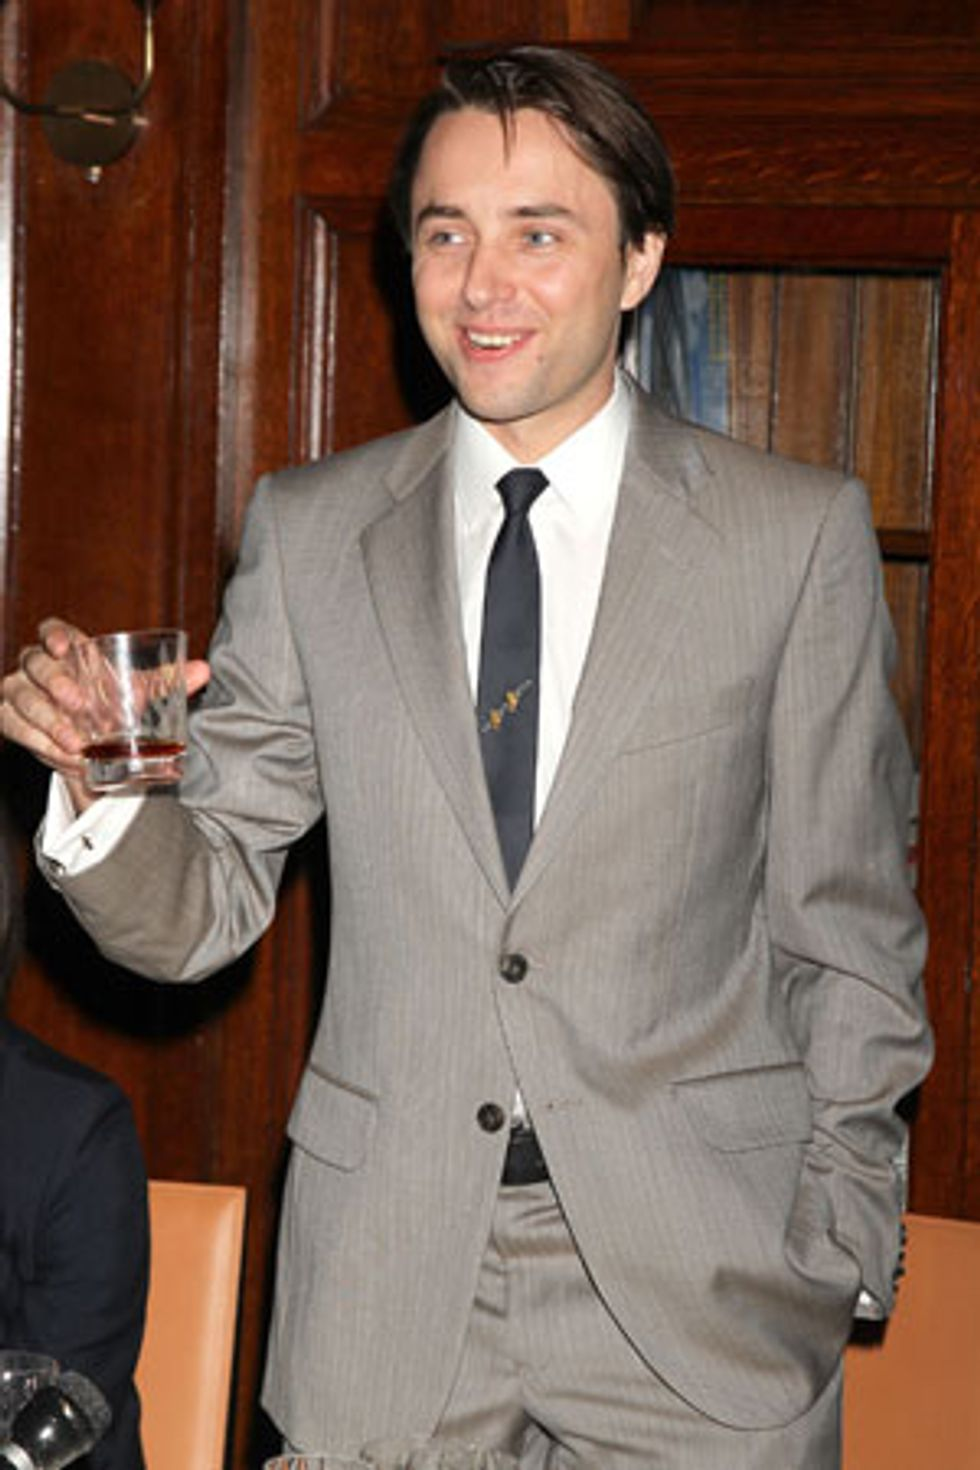 Oh, No Biggie, I Was Just Sipping On Some Remy Martin With Vincent Kartheiser at the Lambs Club